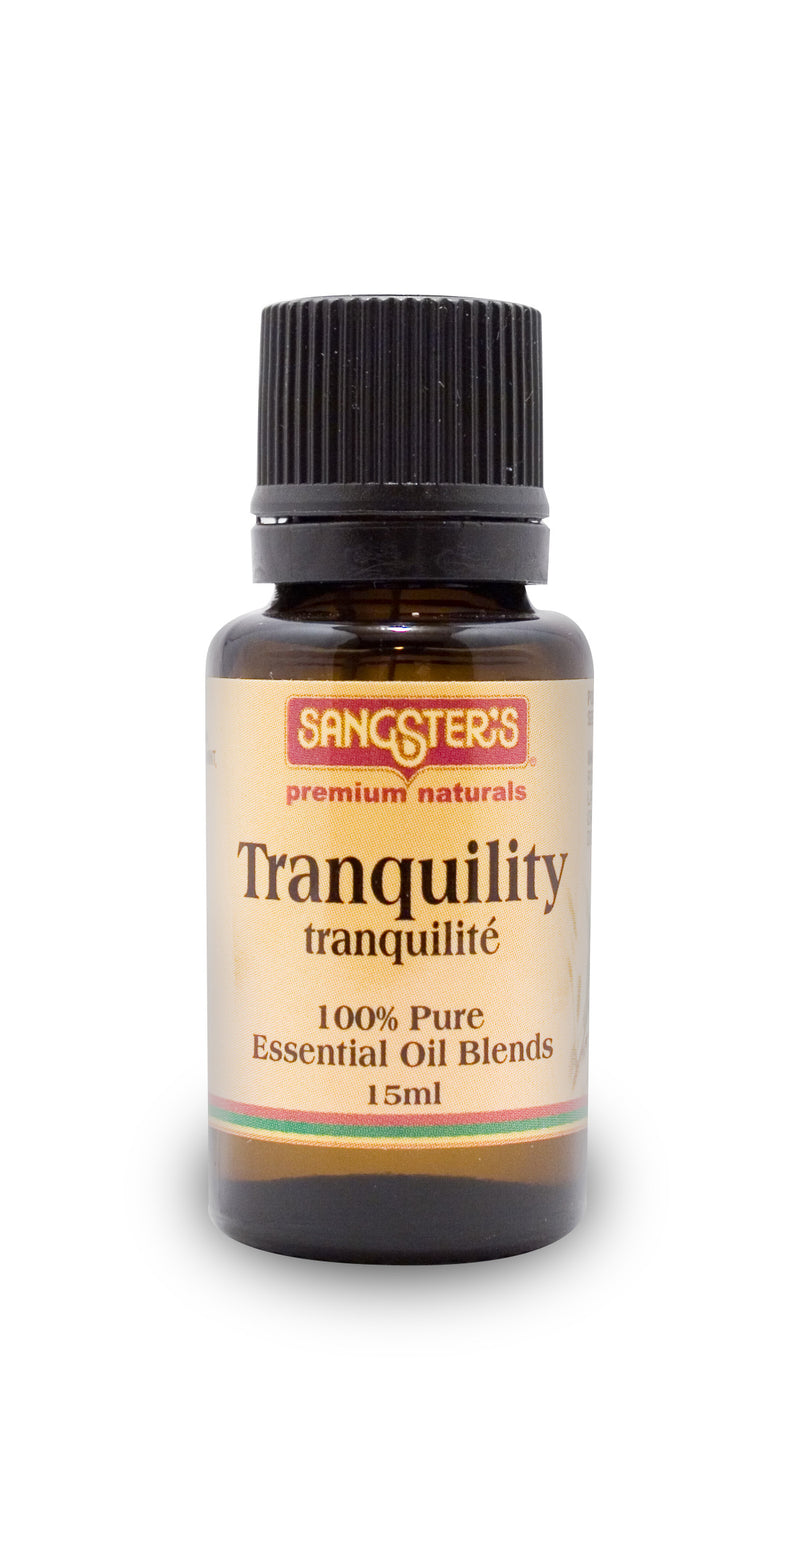 Sangster's Tranquility 100% Pure Essential Oil 15ml